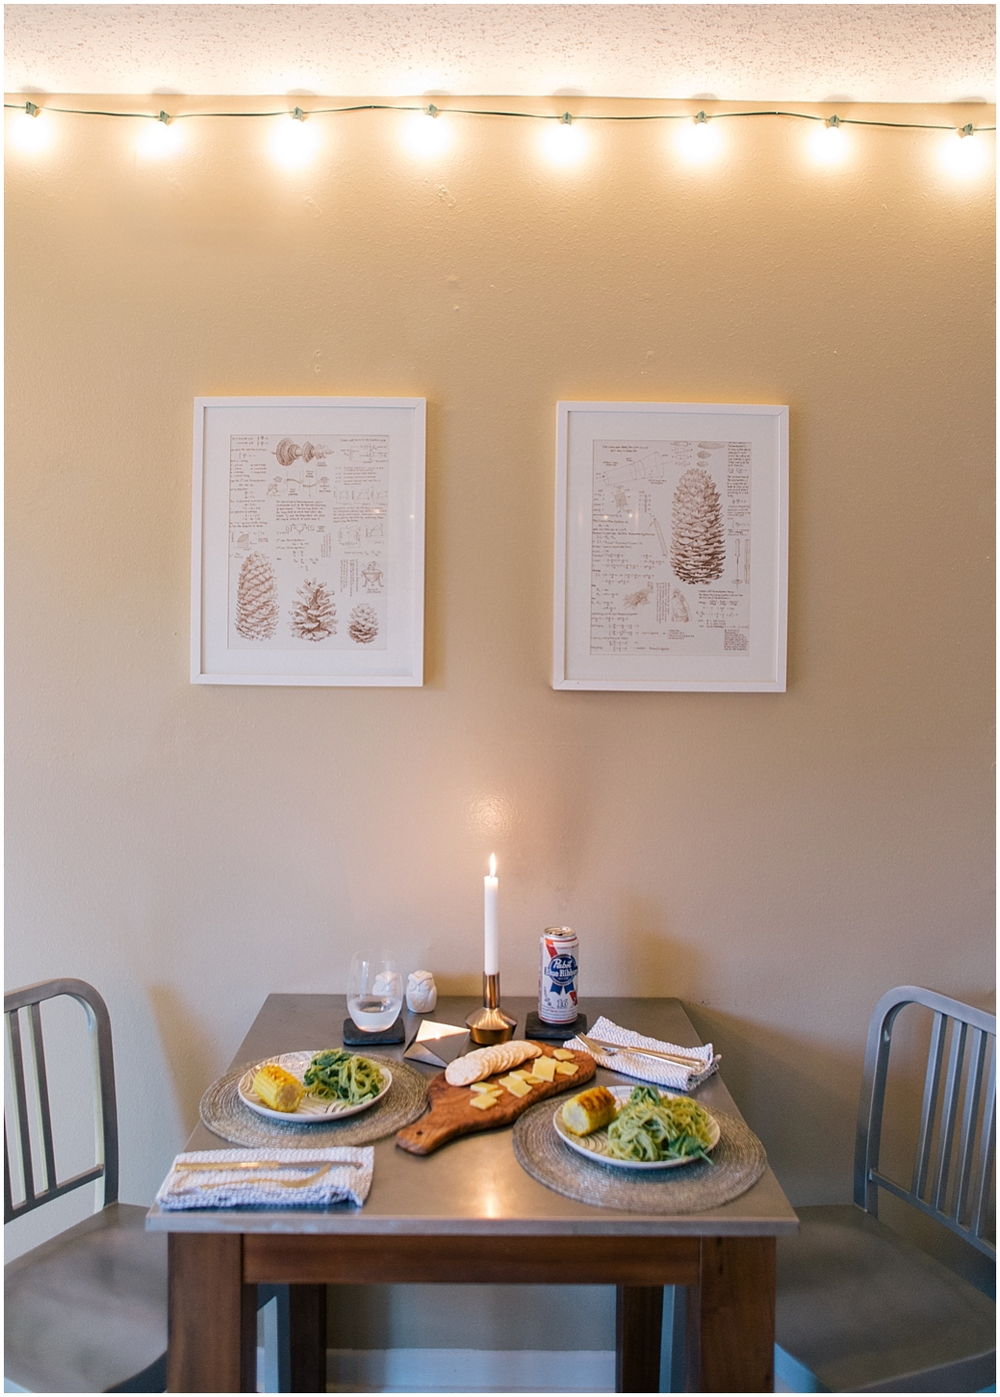 Table, plates, flatware & place mats:  West Elm  / Candle holders:  H&M Home